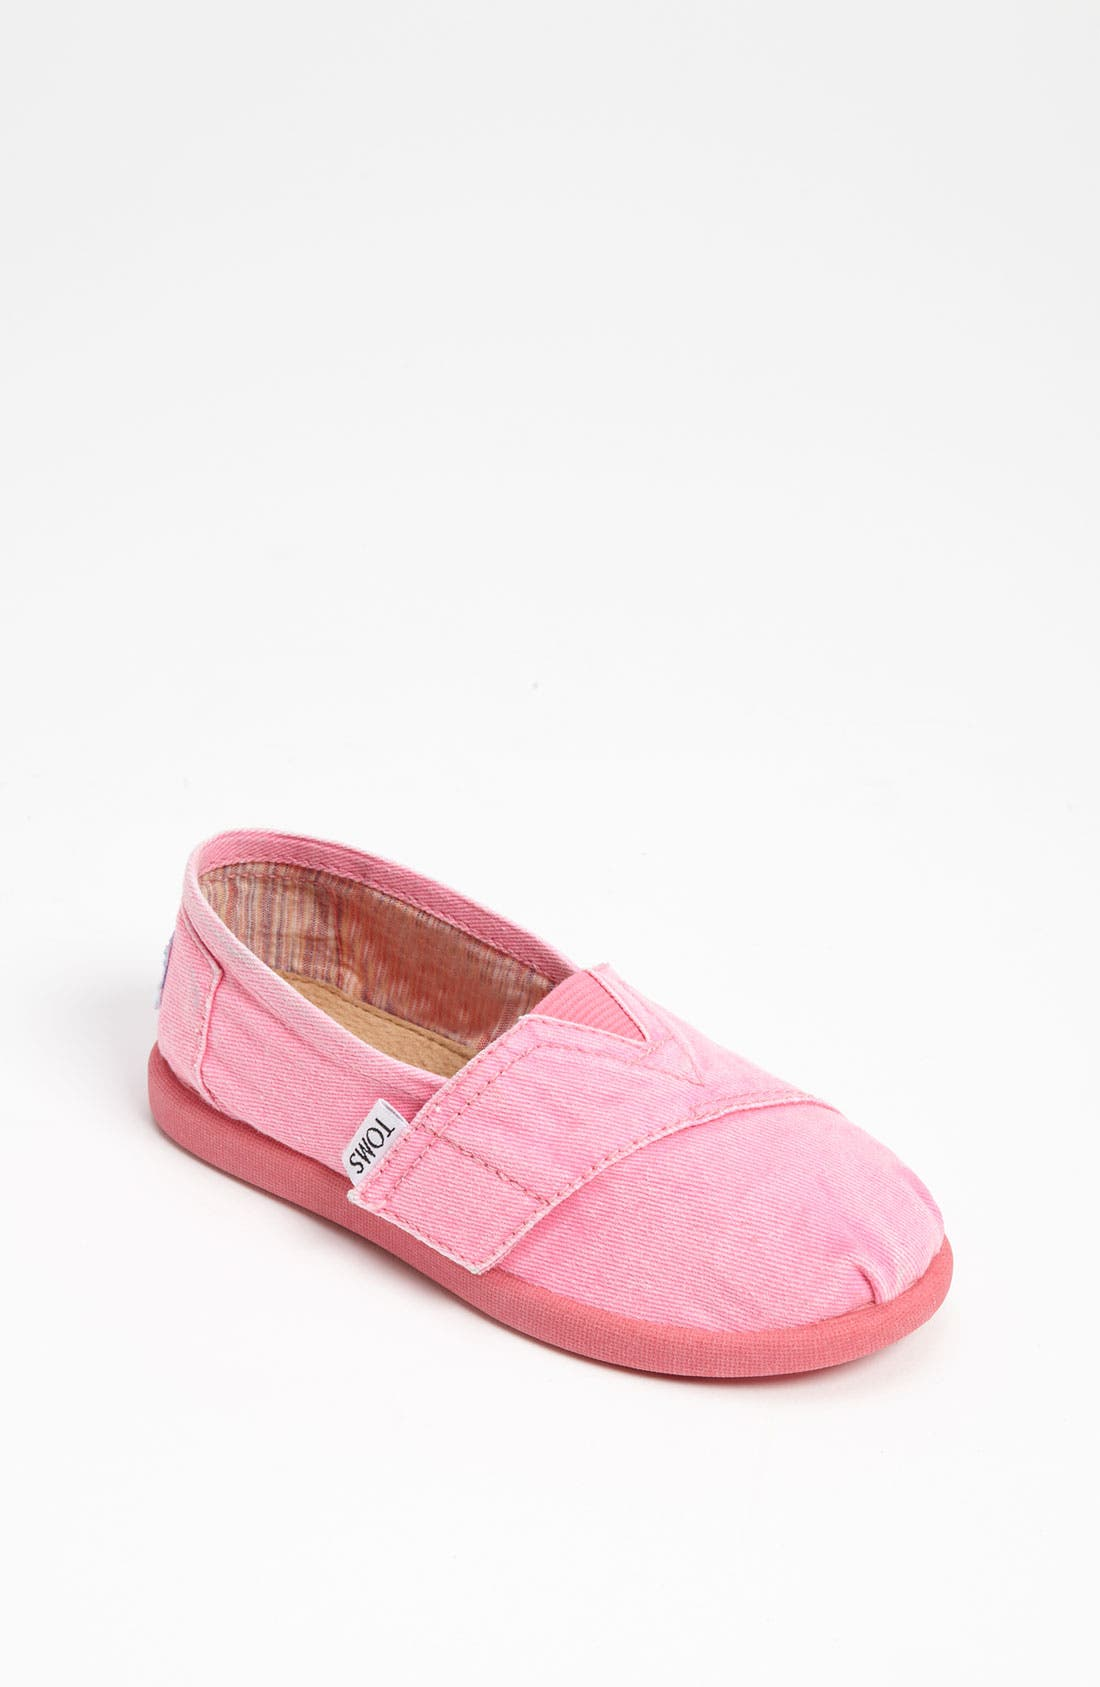 Alternate Image 1 Selected - TOMS 'Classic Tiny - Palmetto' Canvas Slip-On (Baby, Walker & Toddler)